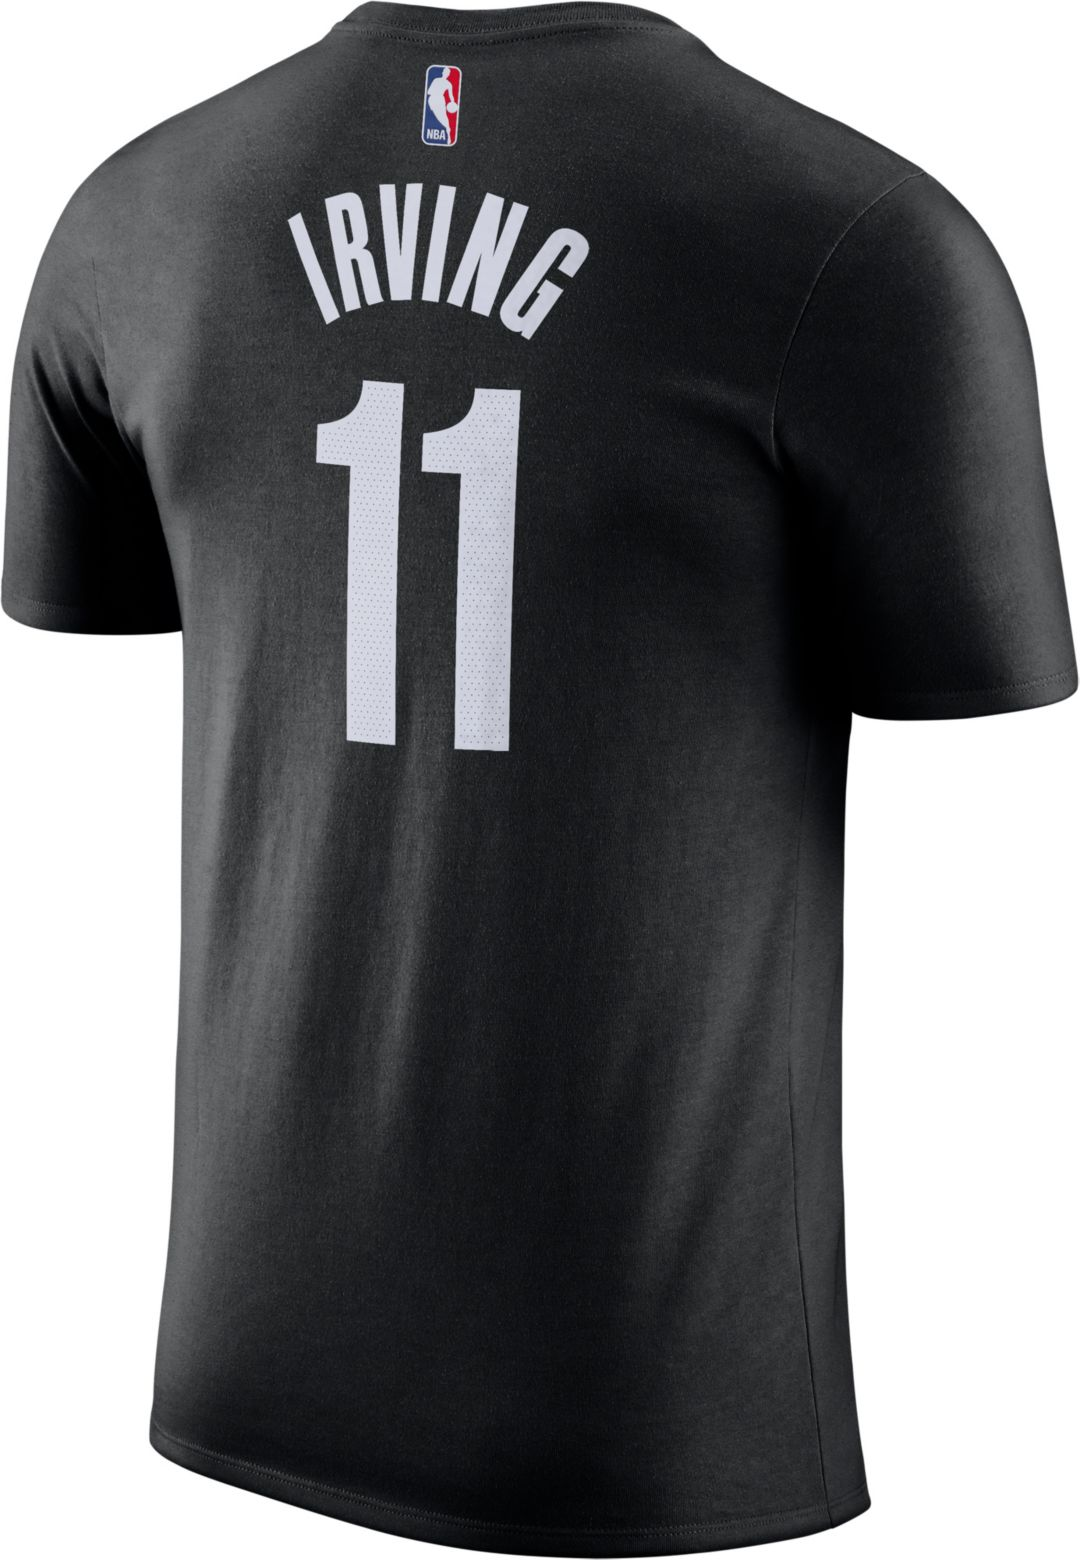 reputable site 40c26 a6c0a Nike Men's Brooklyn Nets Kyrie Irving #11 Dri-FIT Black T-Shirt